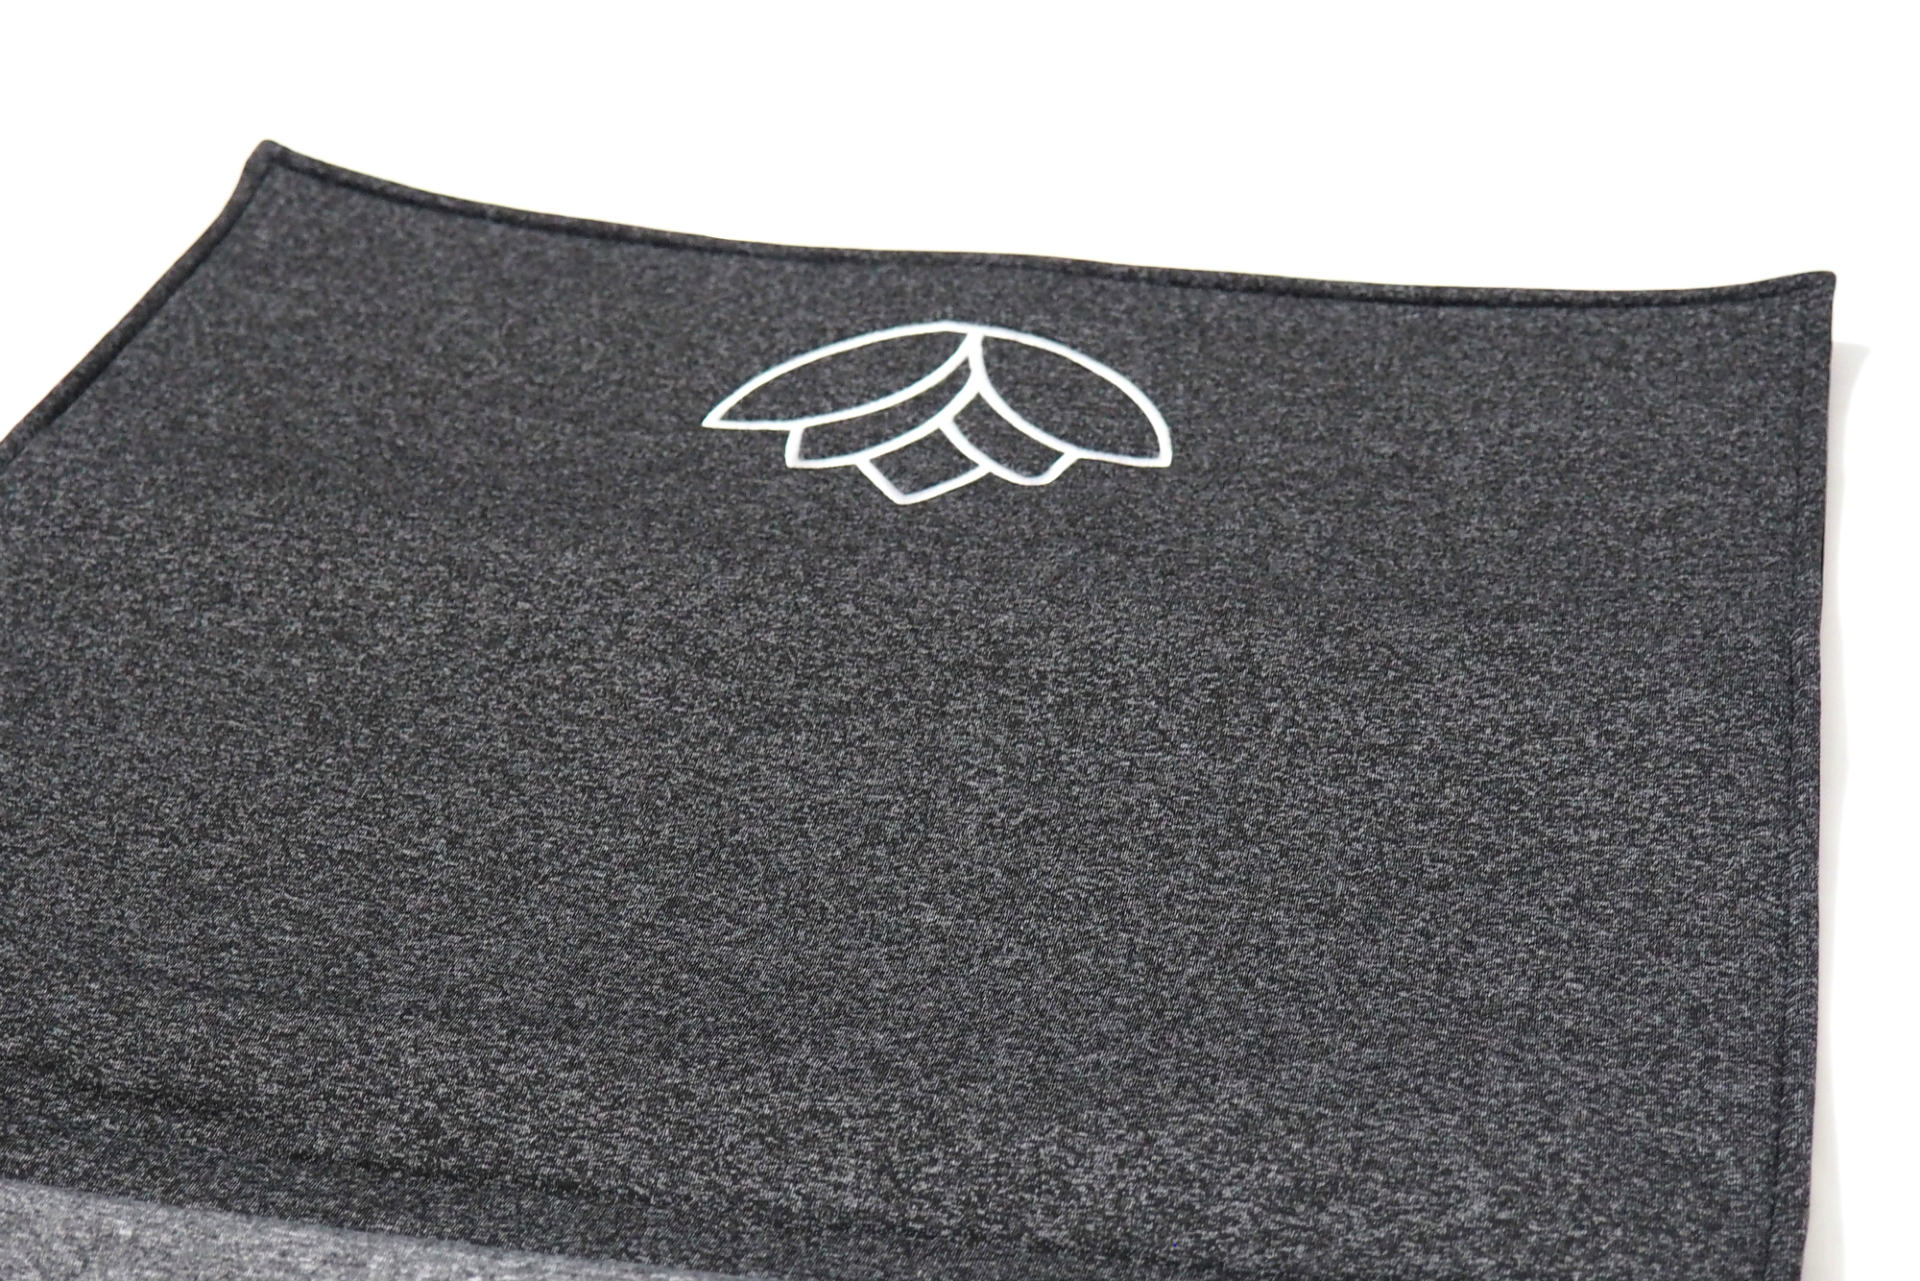 HoMedics Stretch Mat XS Yoga Inspired Back Stretching Mat Review